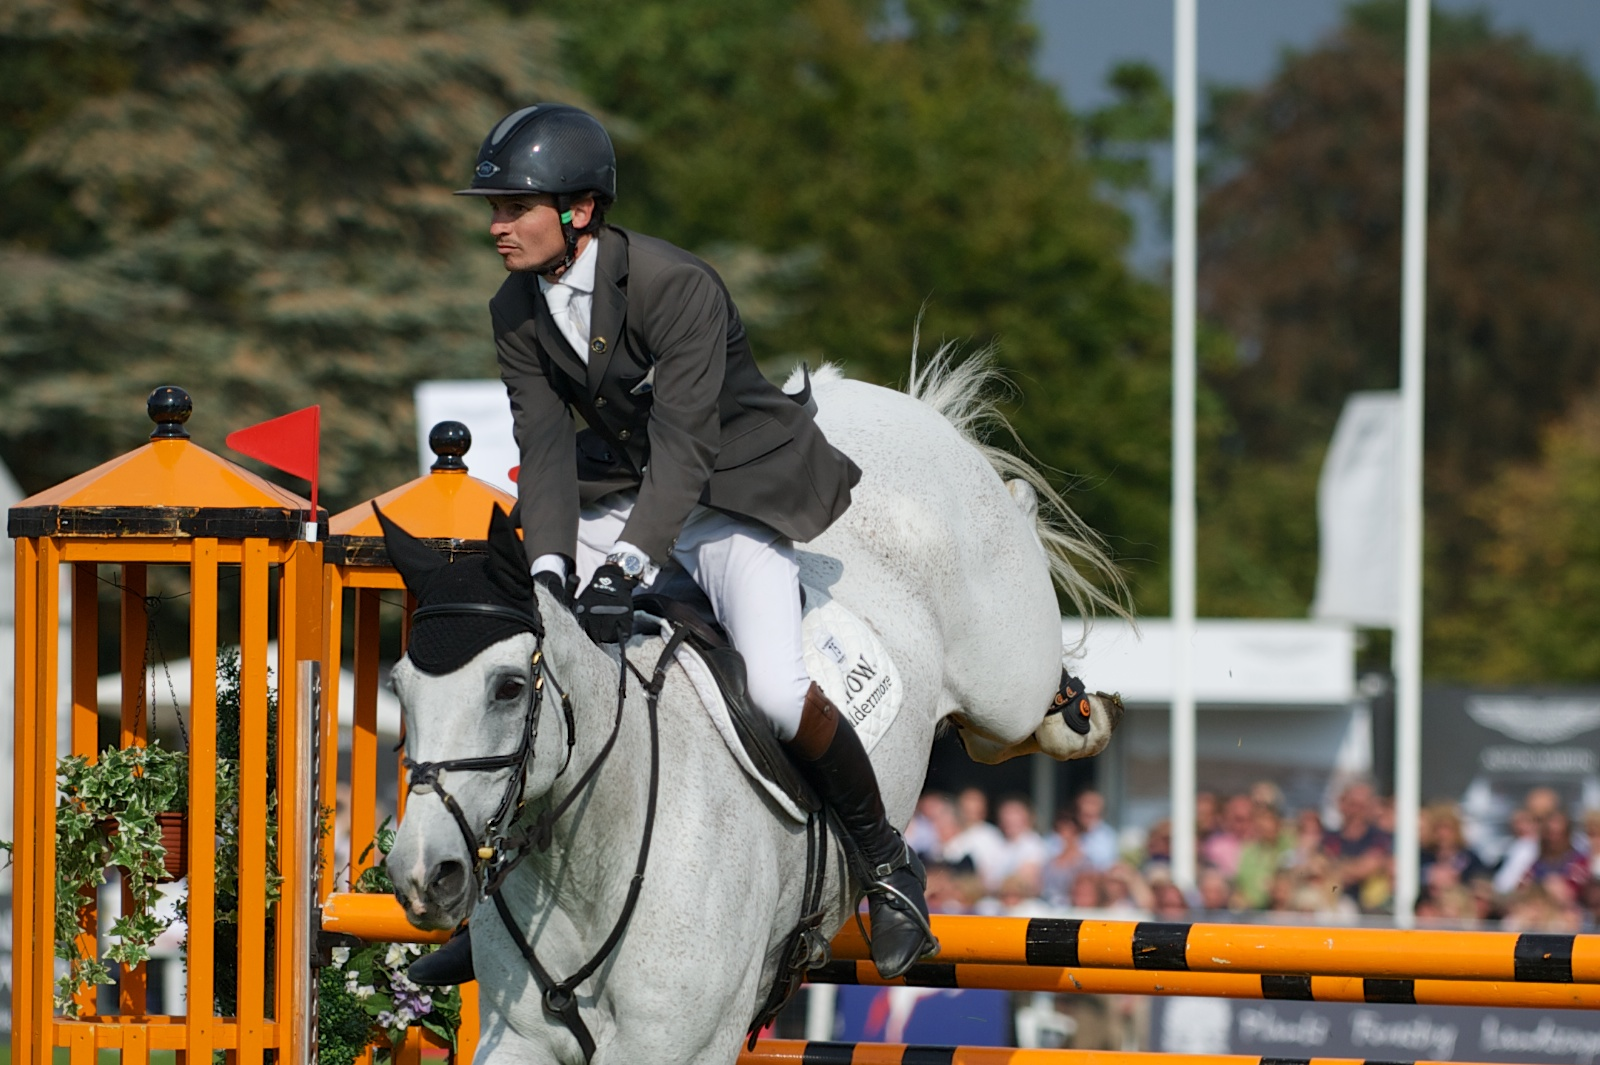 Francis Whittington Rides Easy Target To Win His First CCI*** Win At Blenheim International Horse Trials